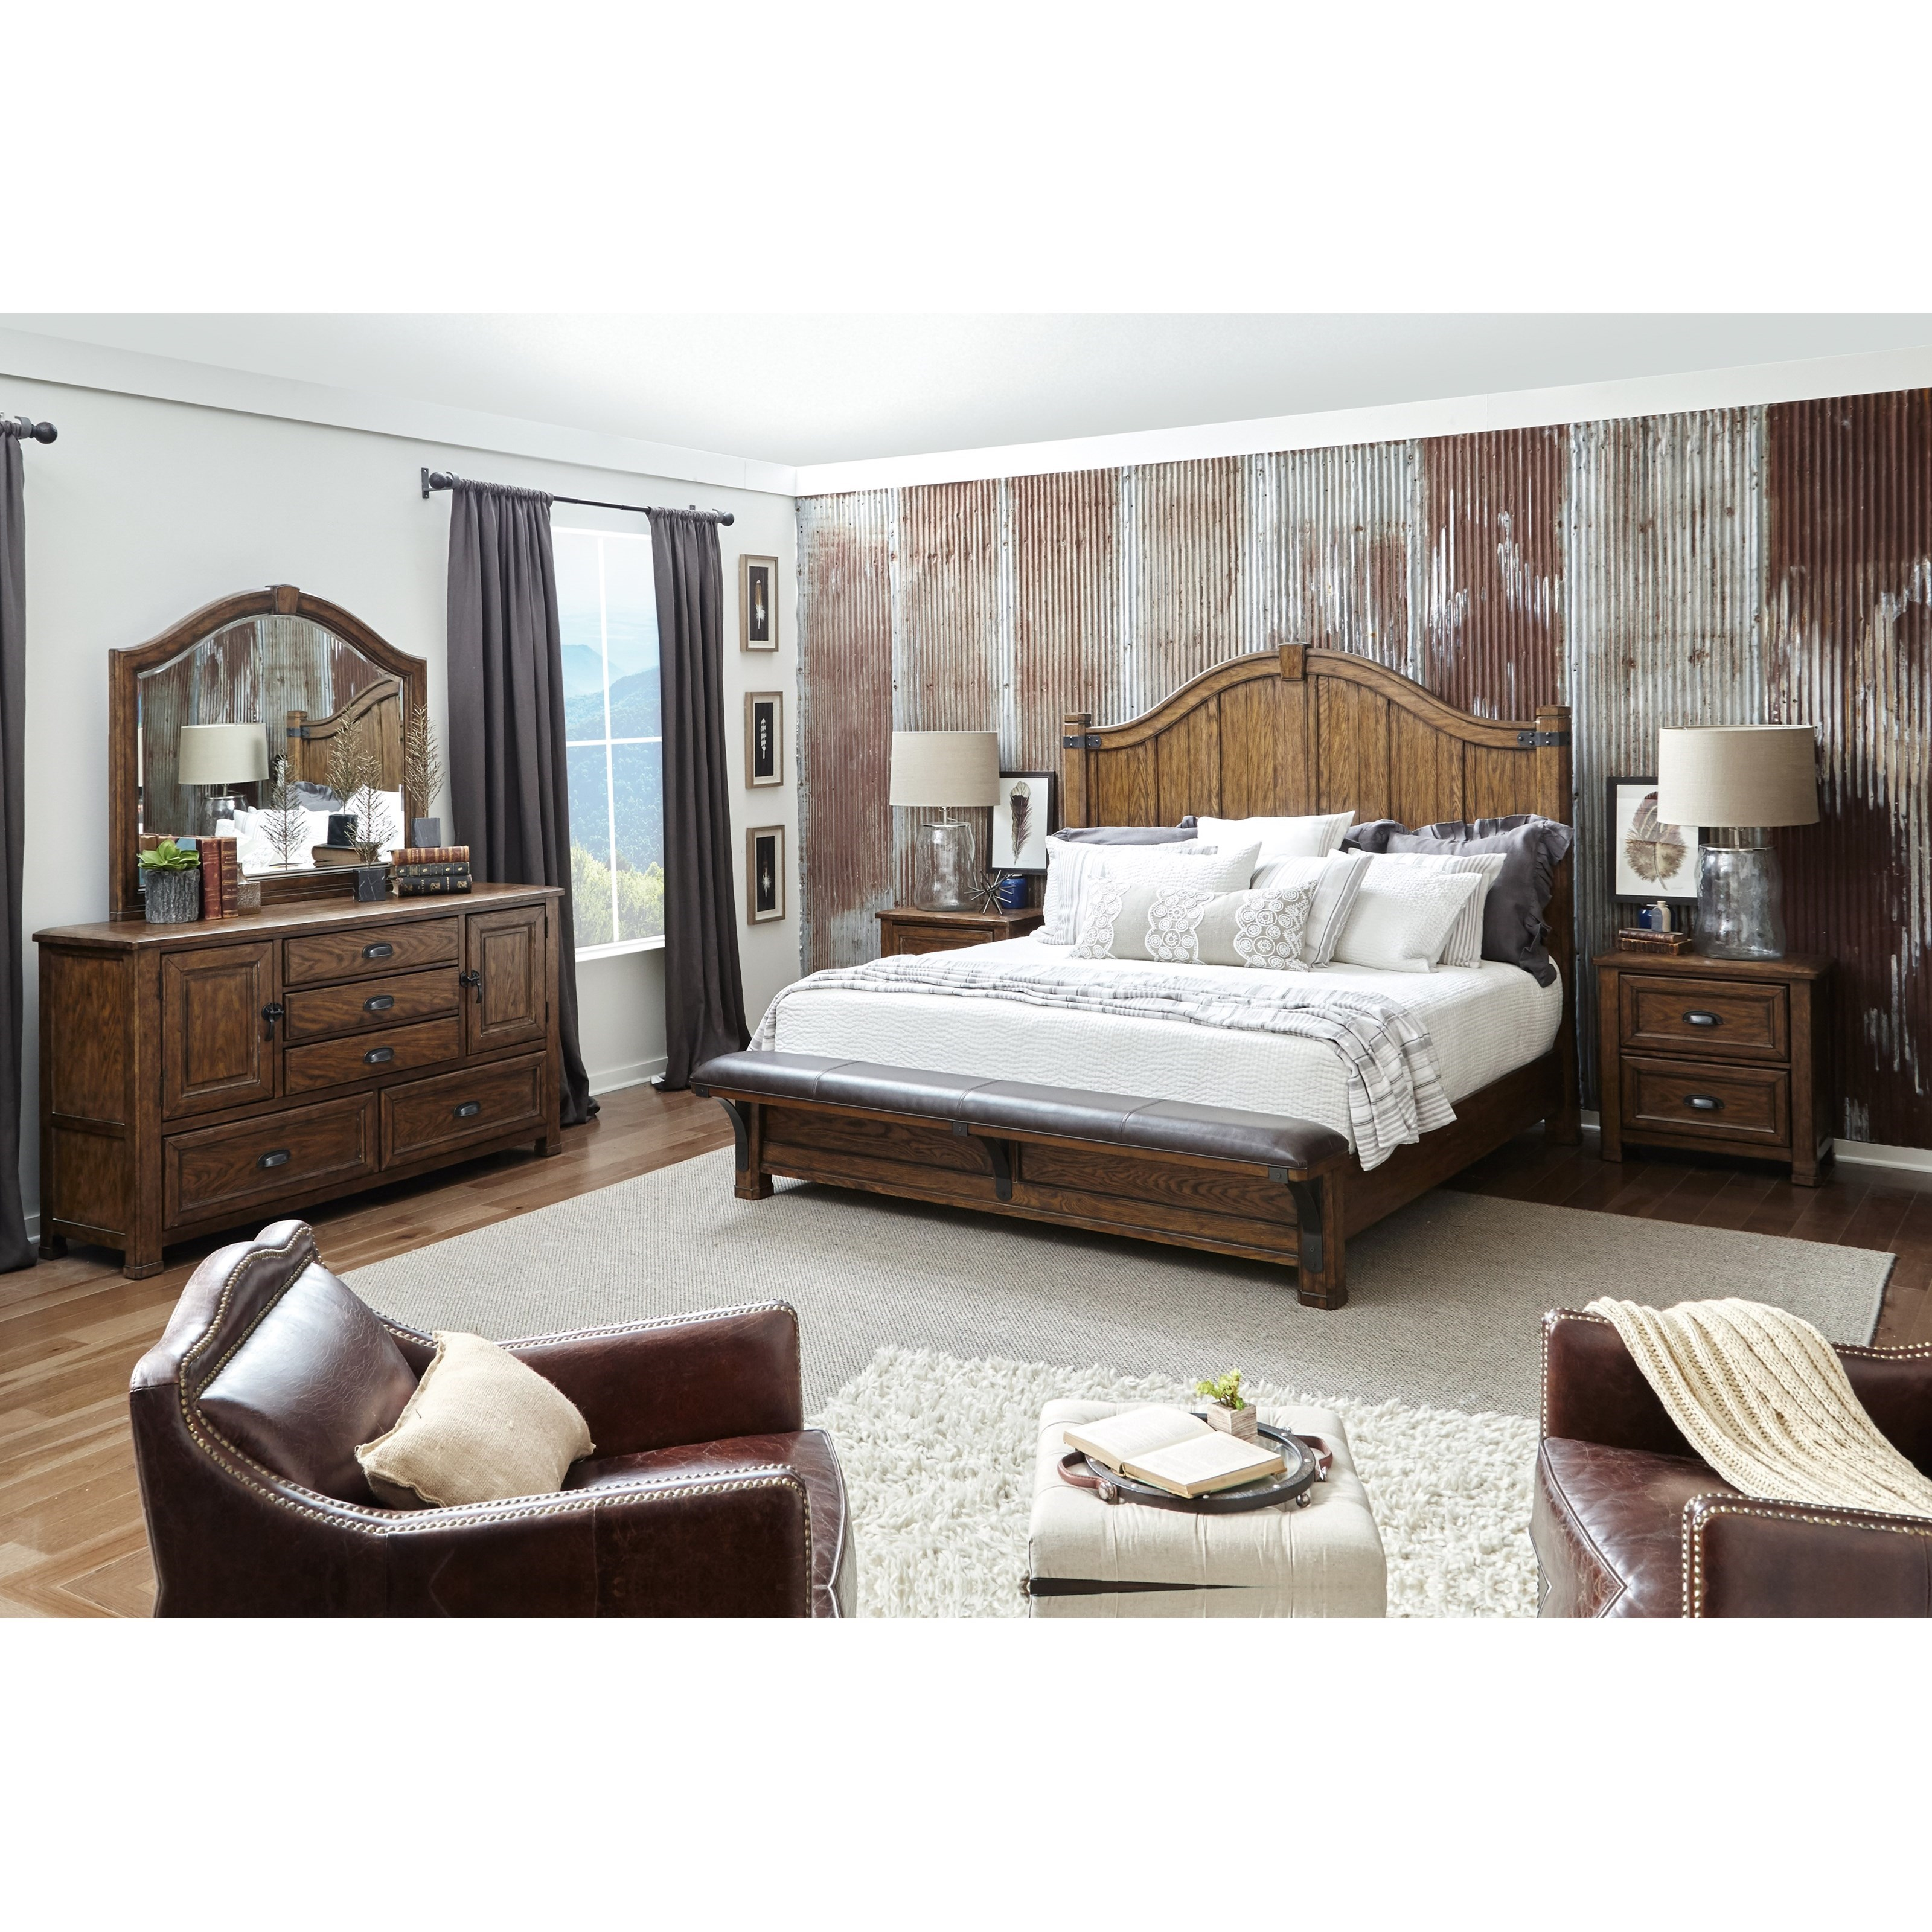 Eric church 39 s highway to home by pulaski eric church for Bedroom groups